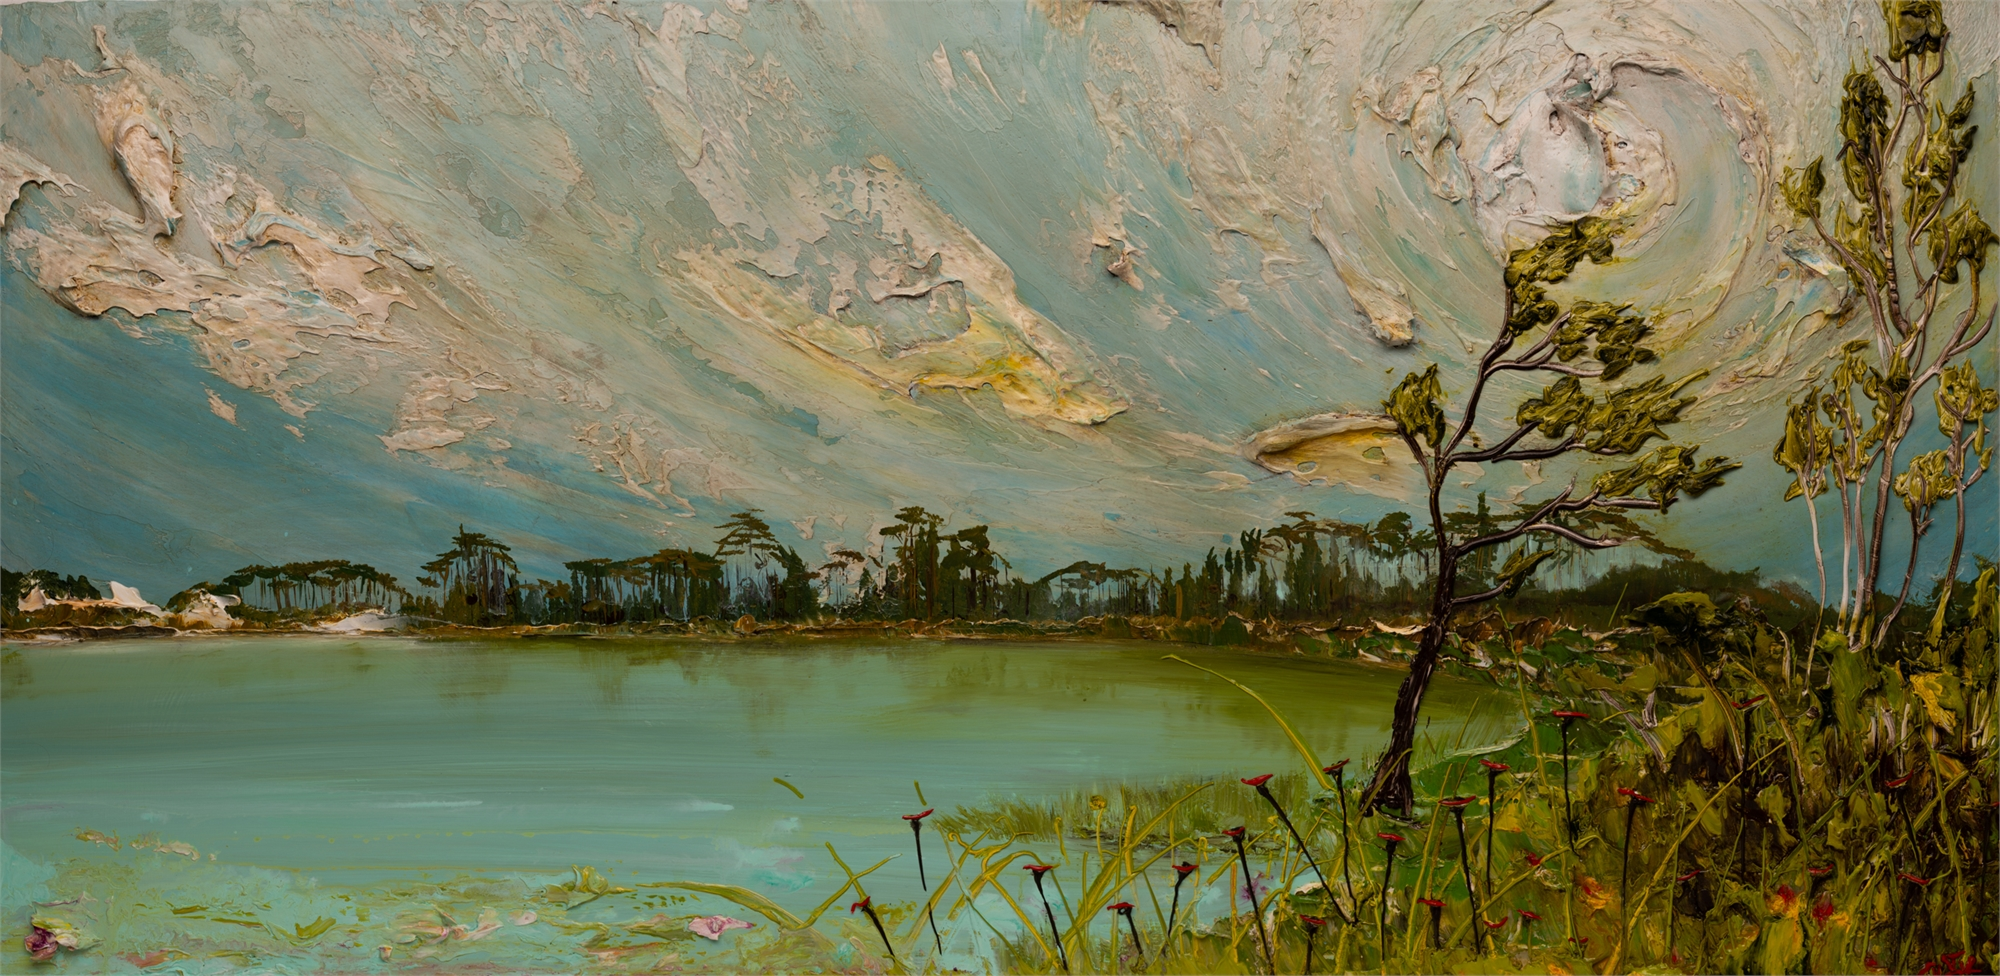 LAKESCAPE LS-60x30-2019-335 by JUSTIN GAFFREY